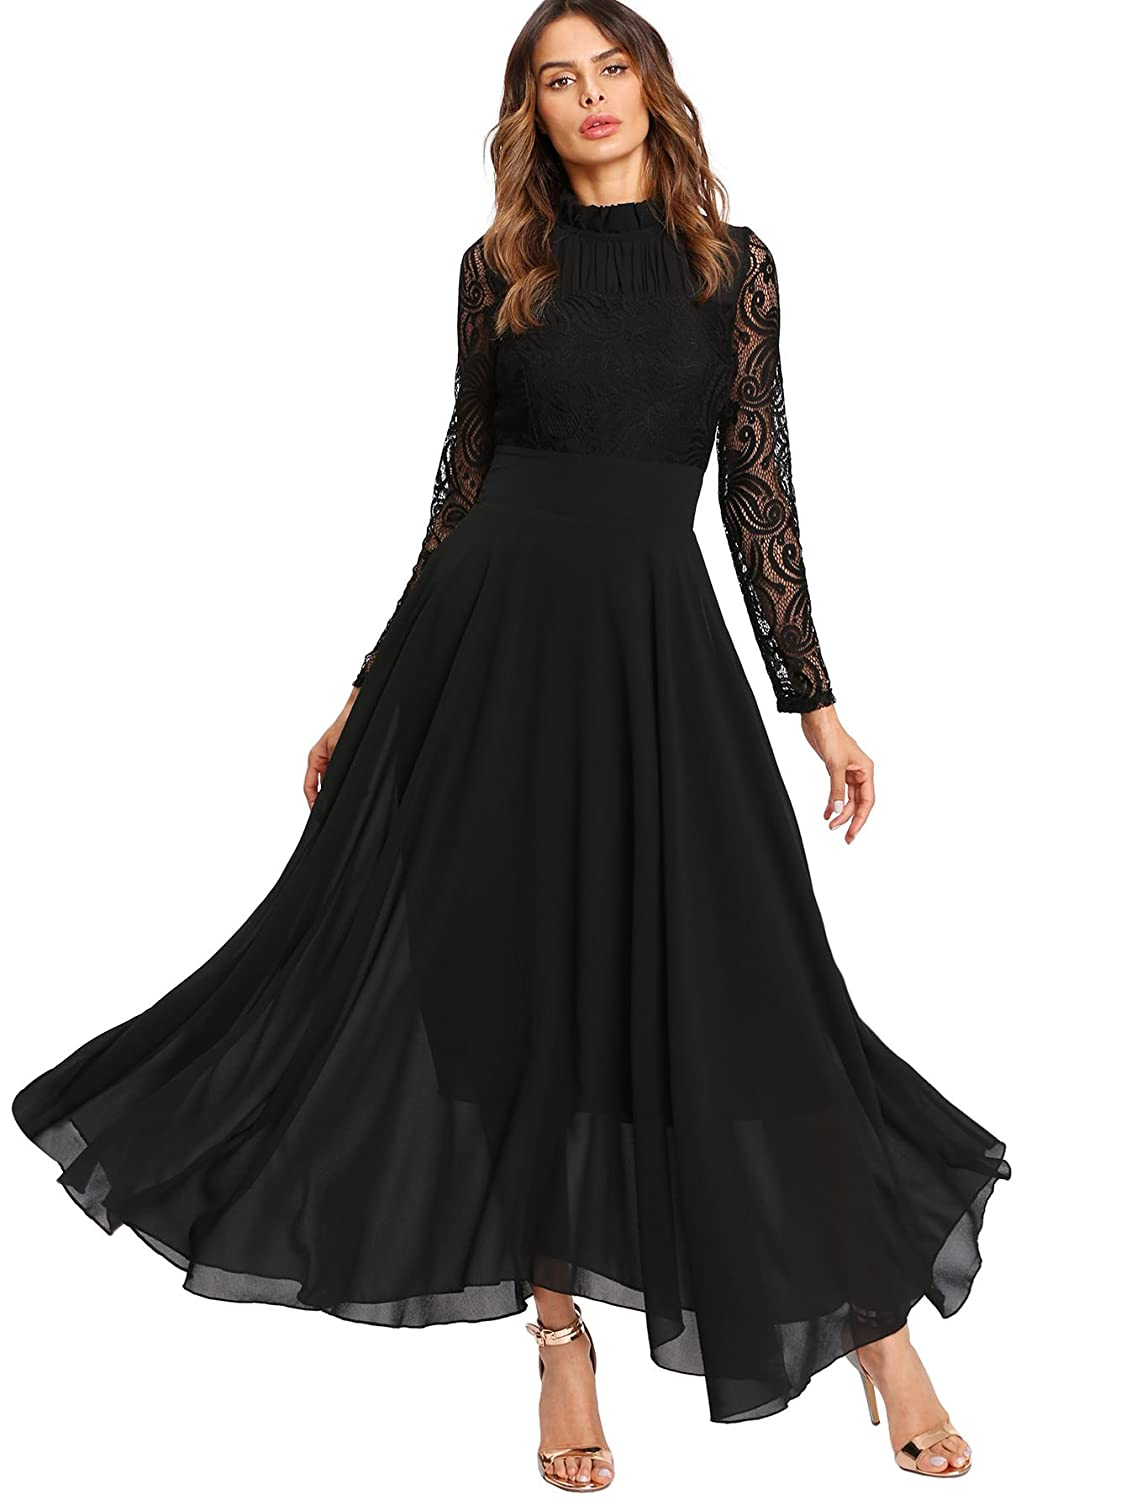 Edwardian Ladies Clothing – 1900, 1910s, Titanic Era Milumia Womens Vintage Floral Lace Long Sleeve Ruched Neck Flowy Long Dress $28.99 AT vintagedancer.com